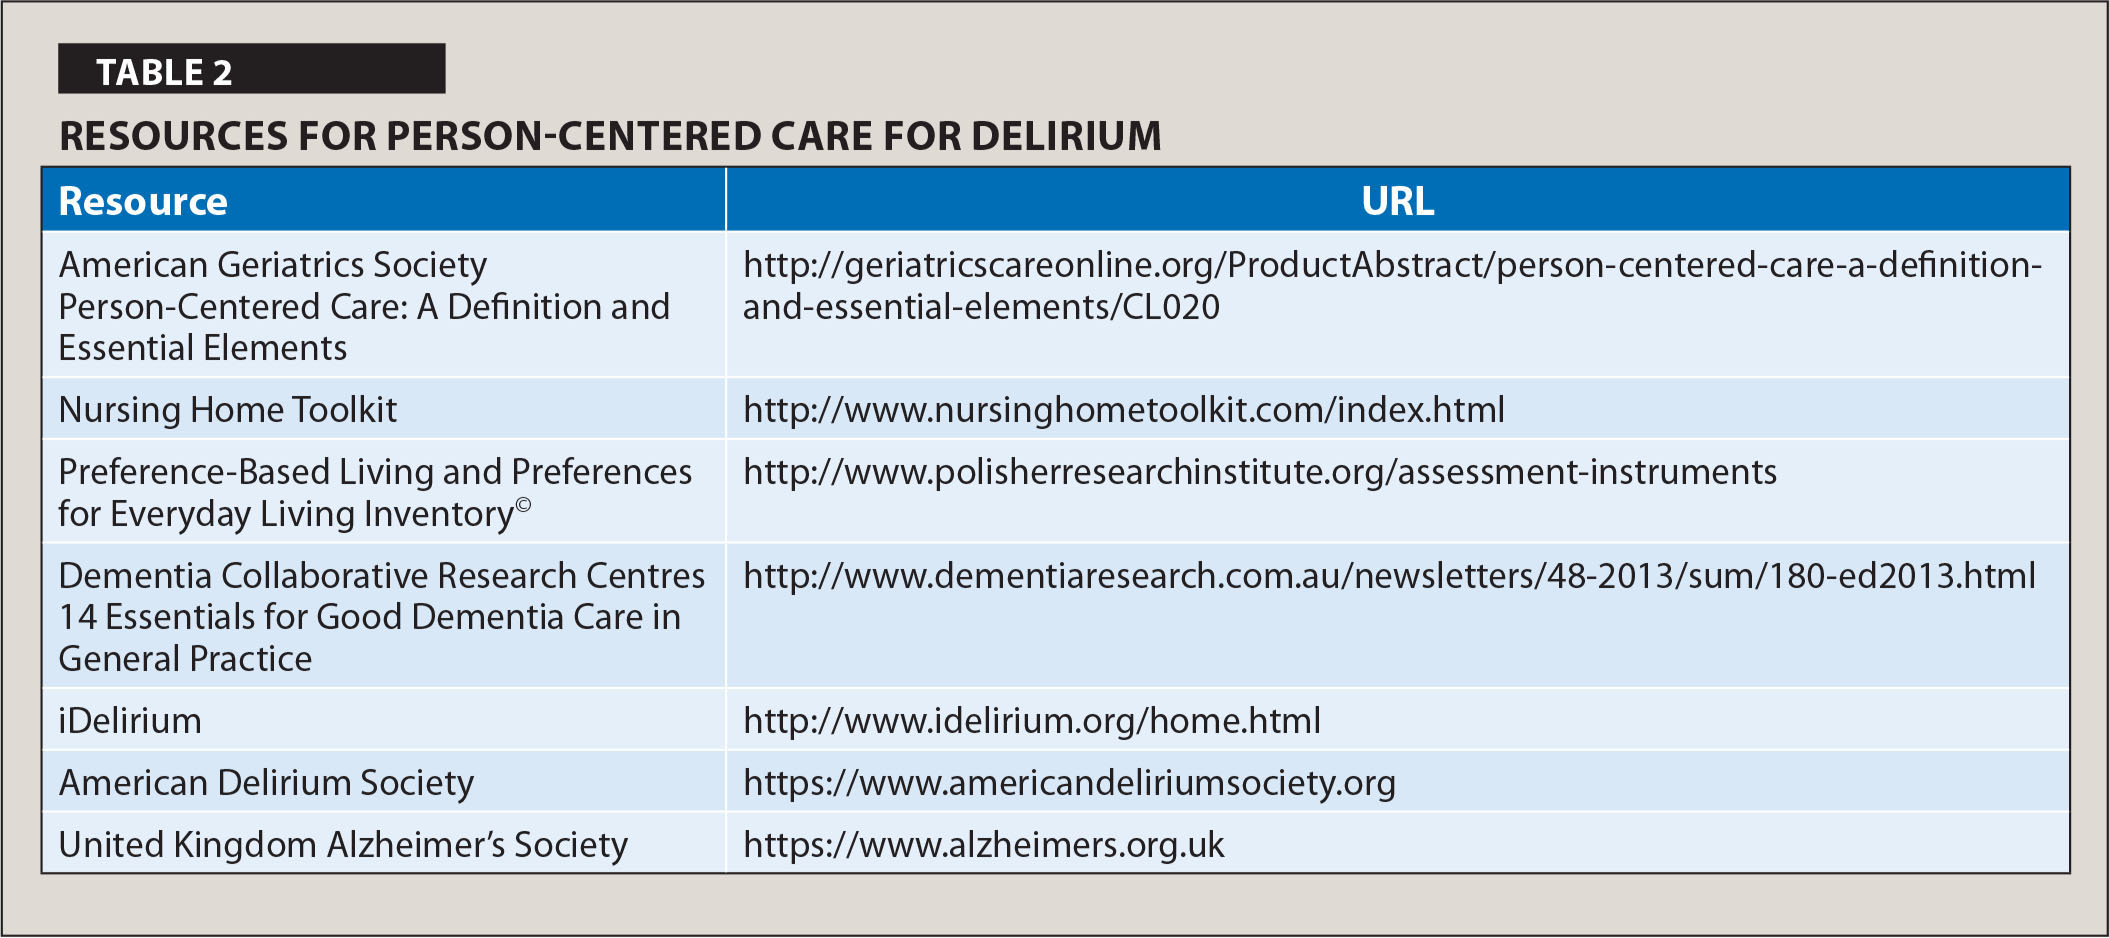 Resources for Person-Centered Care for Delirium